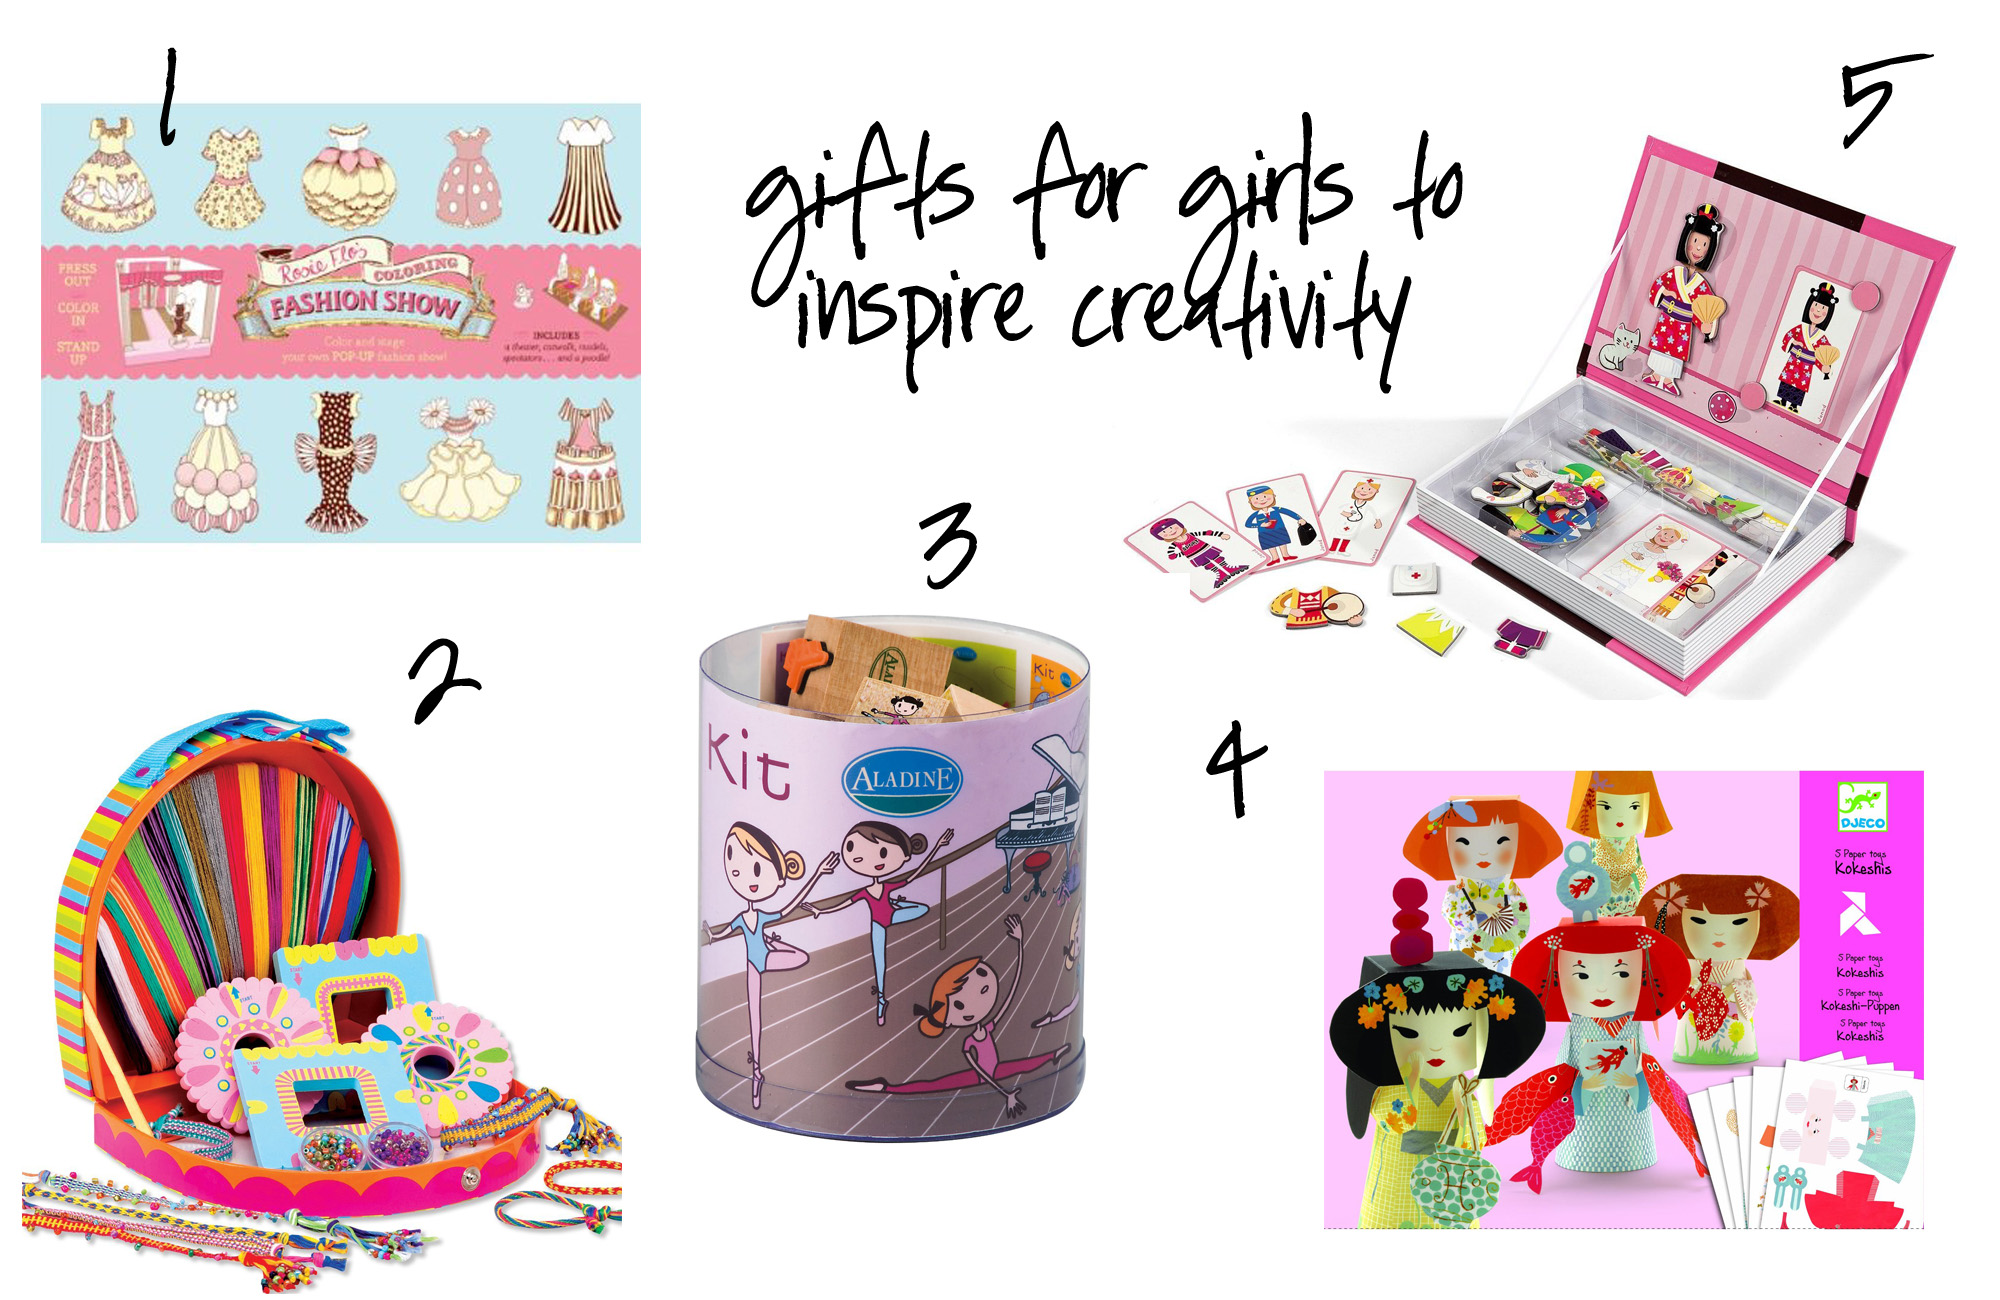 gifts for girls to inspire creativity